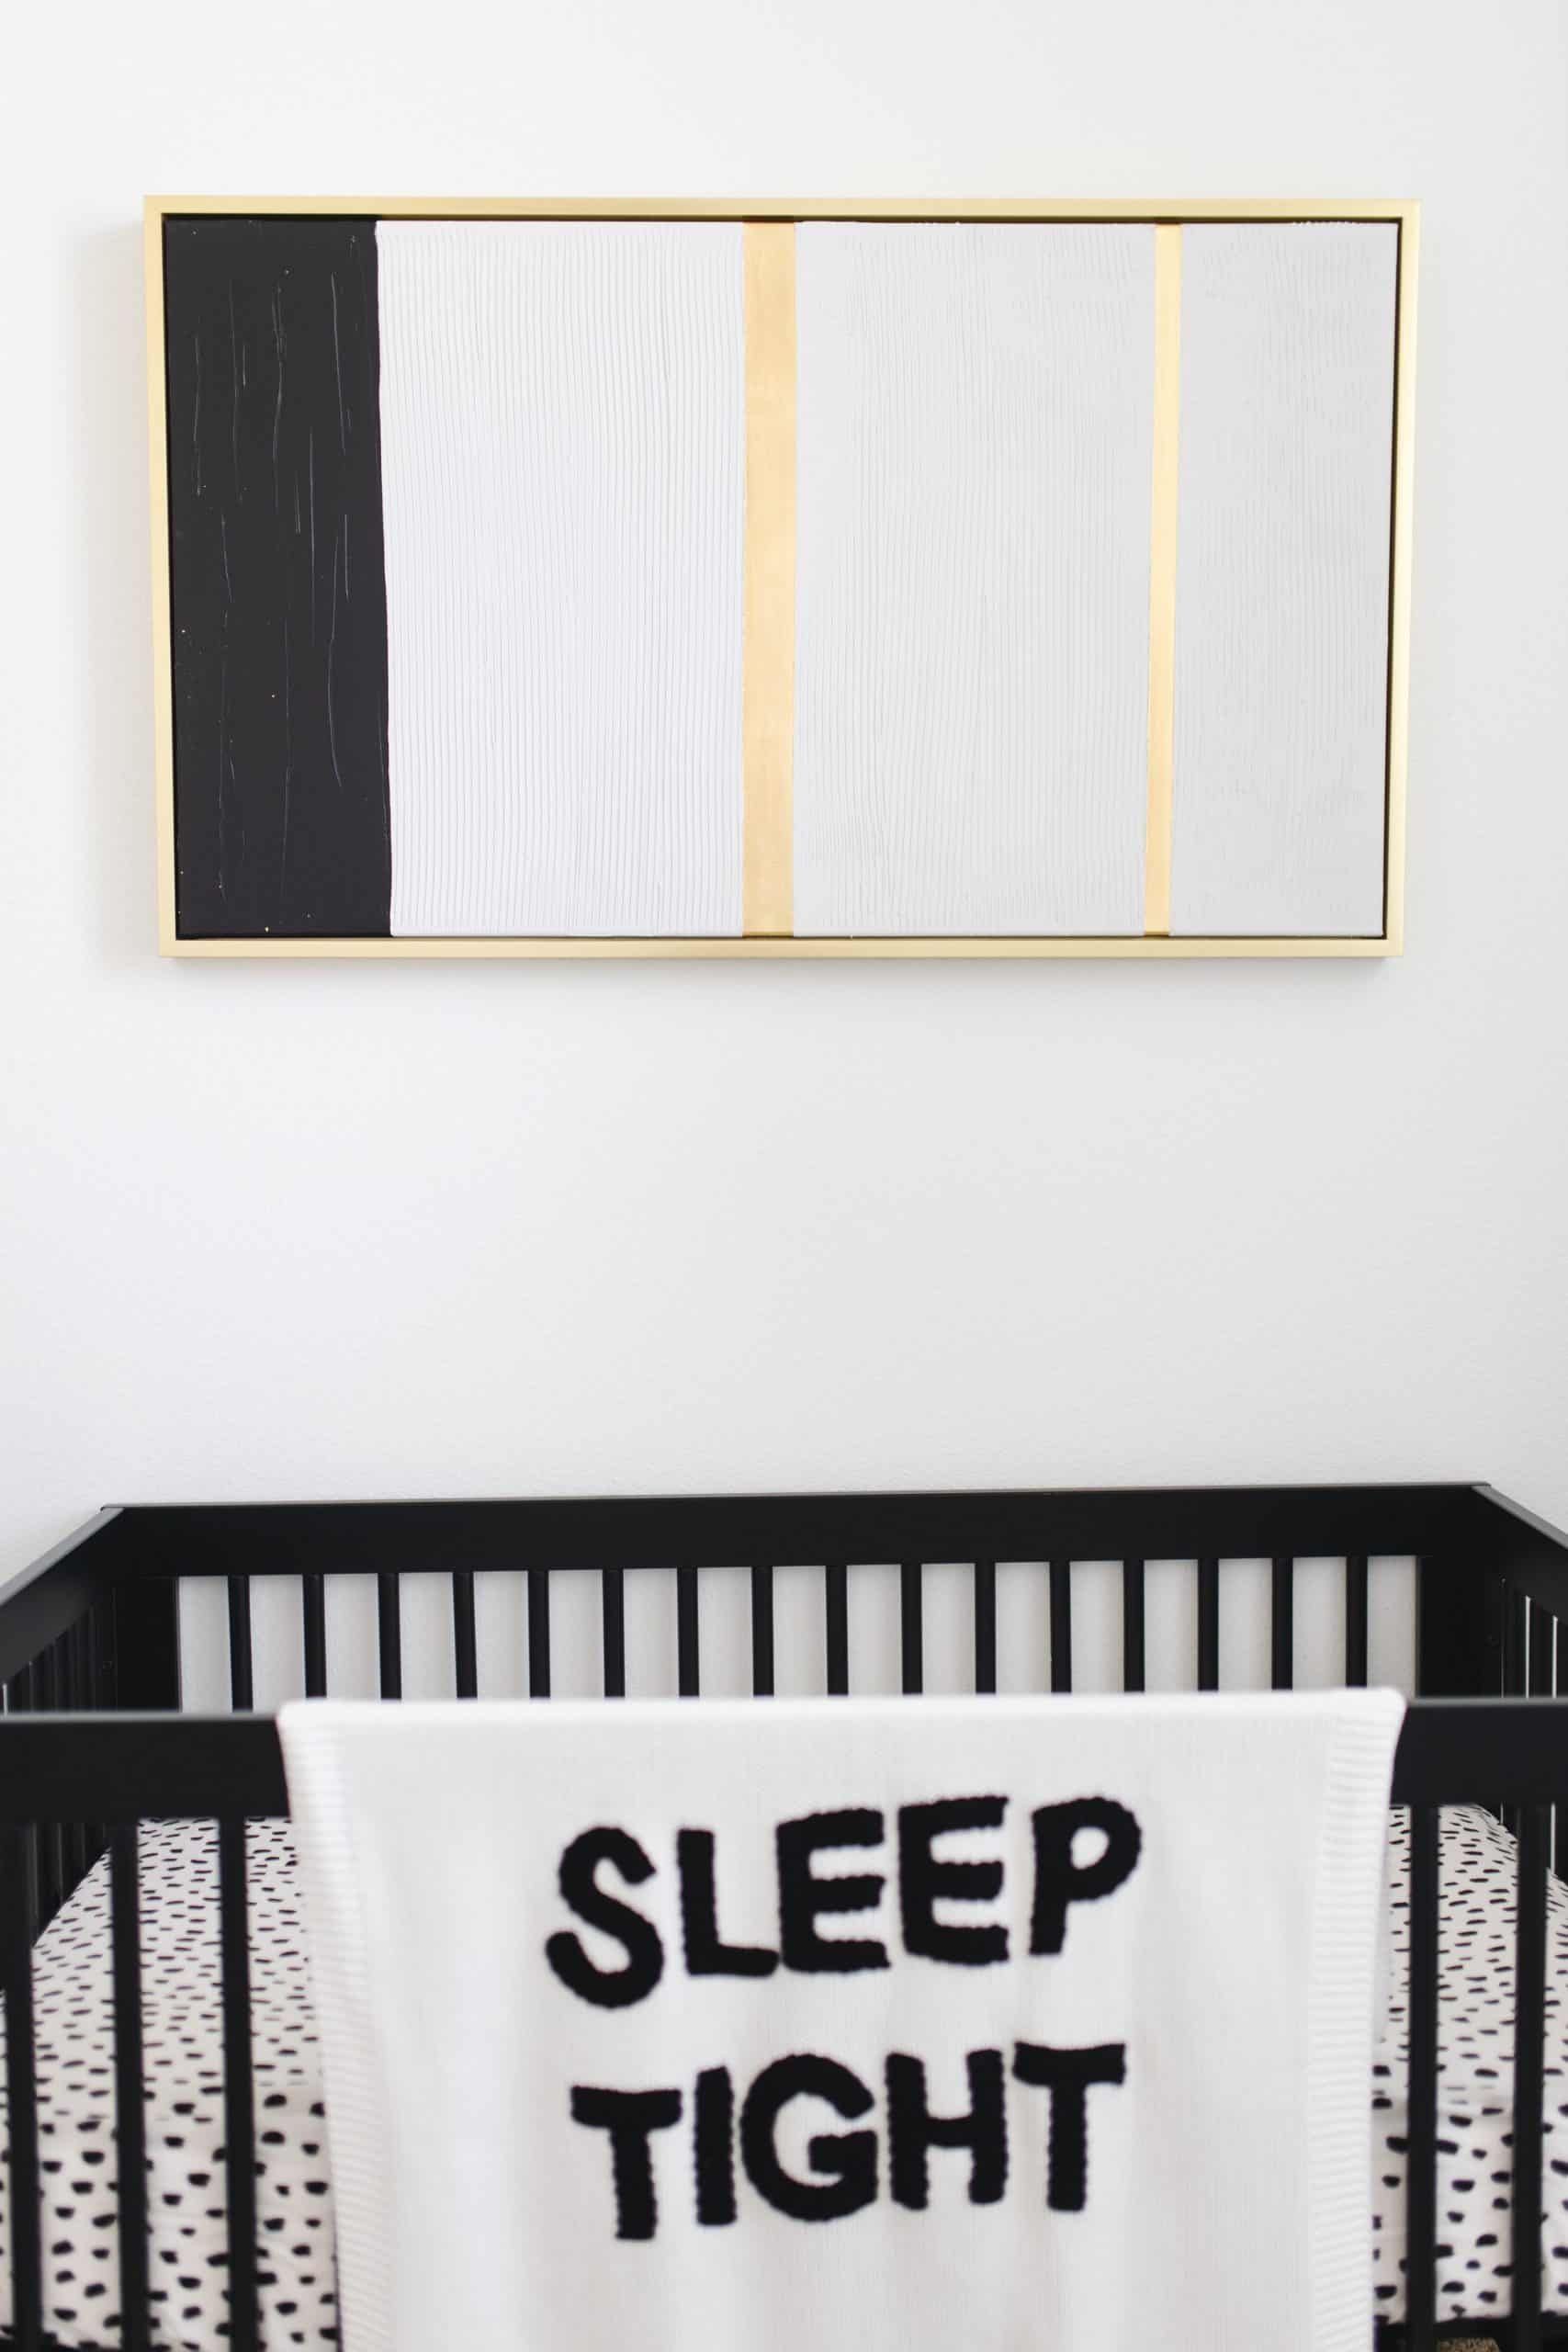 Pottery Barn Baby Registry by popular Dallas motherhood blog, Glamorous Versatility: image of black, white and gold painting hanging above a black crib with a Sleep Tight blanket hanging over the railing.